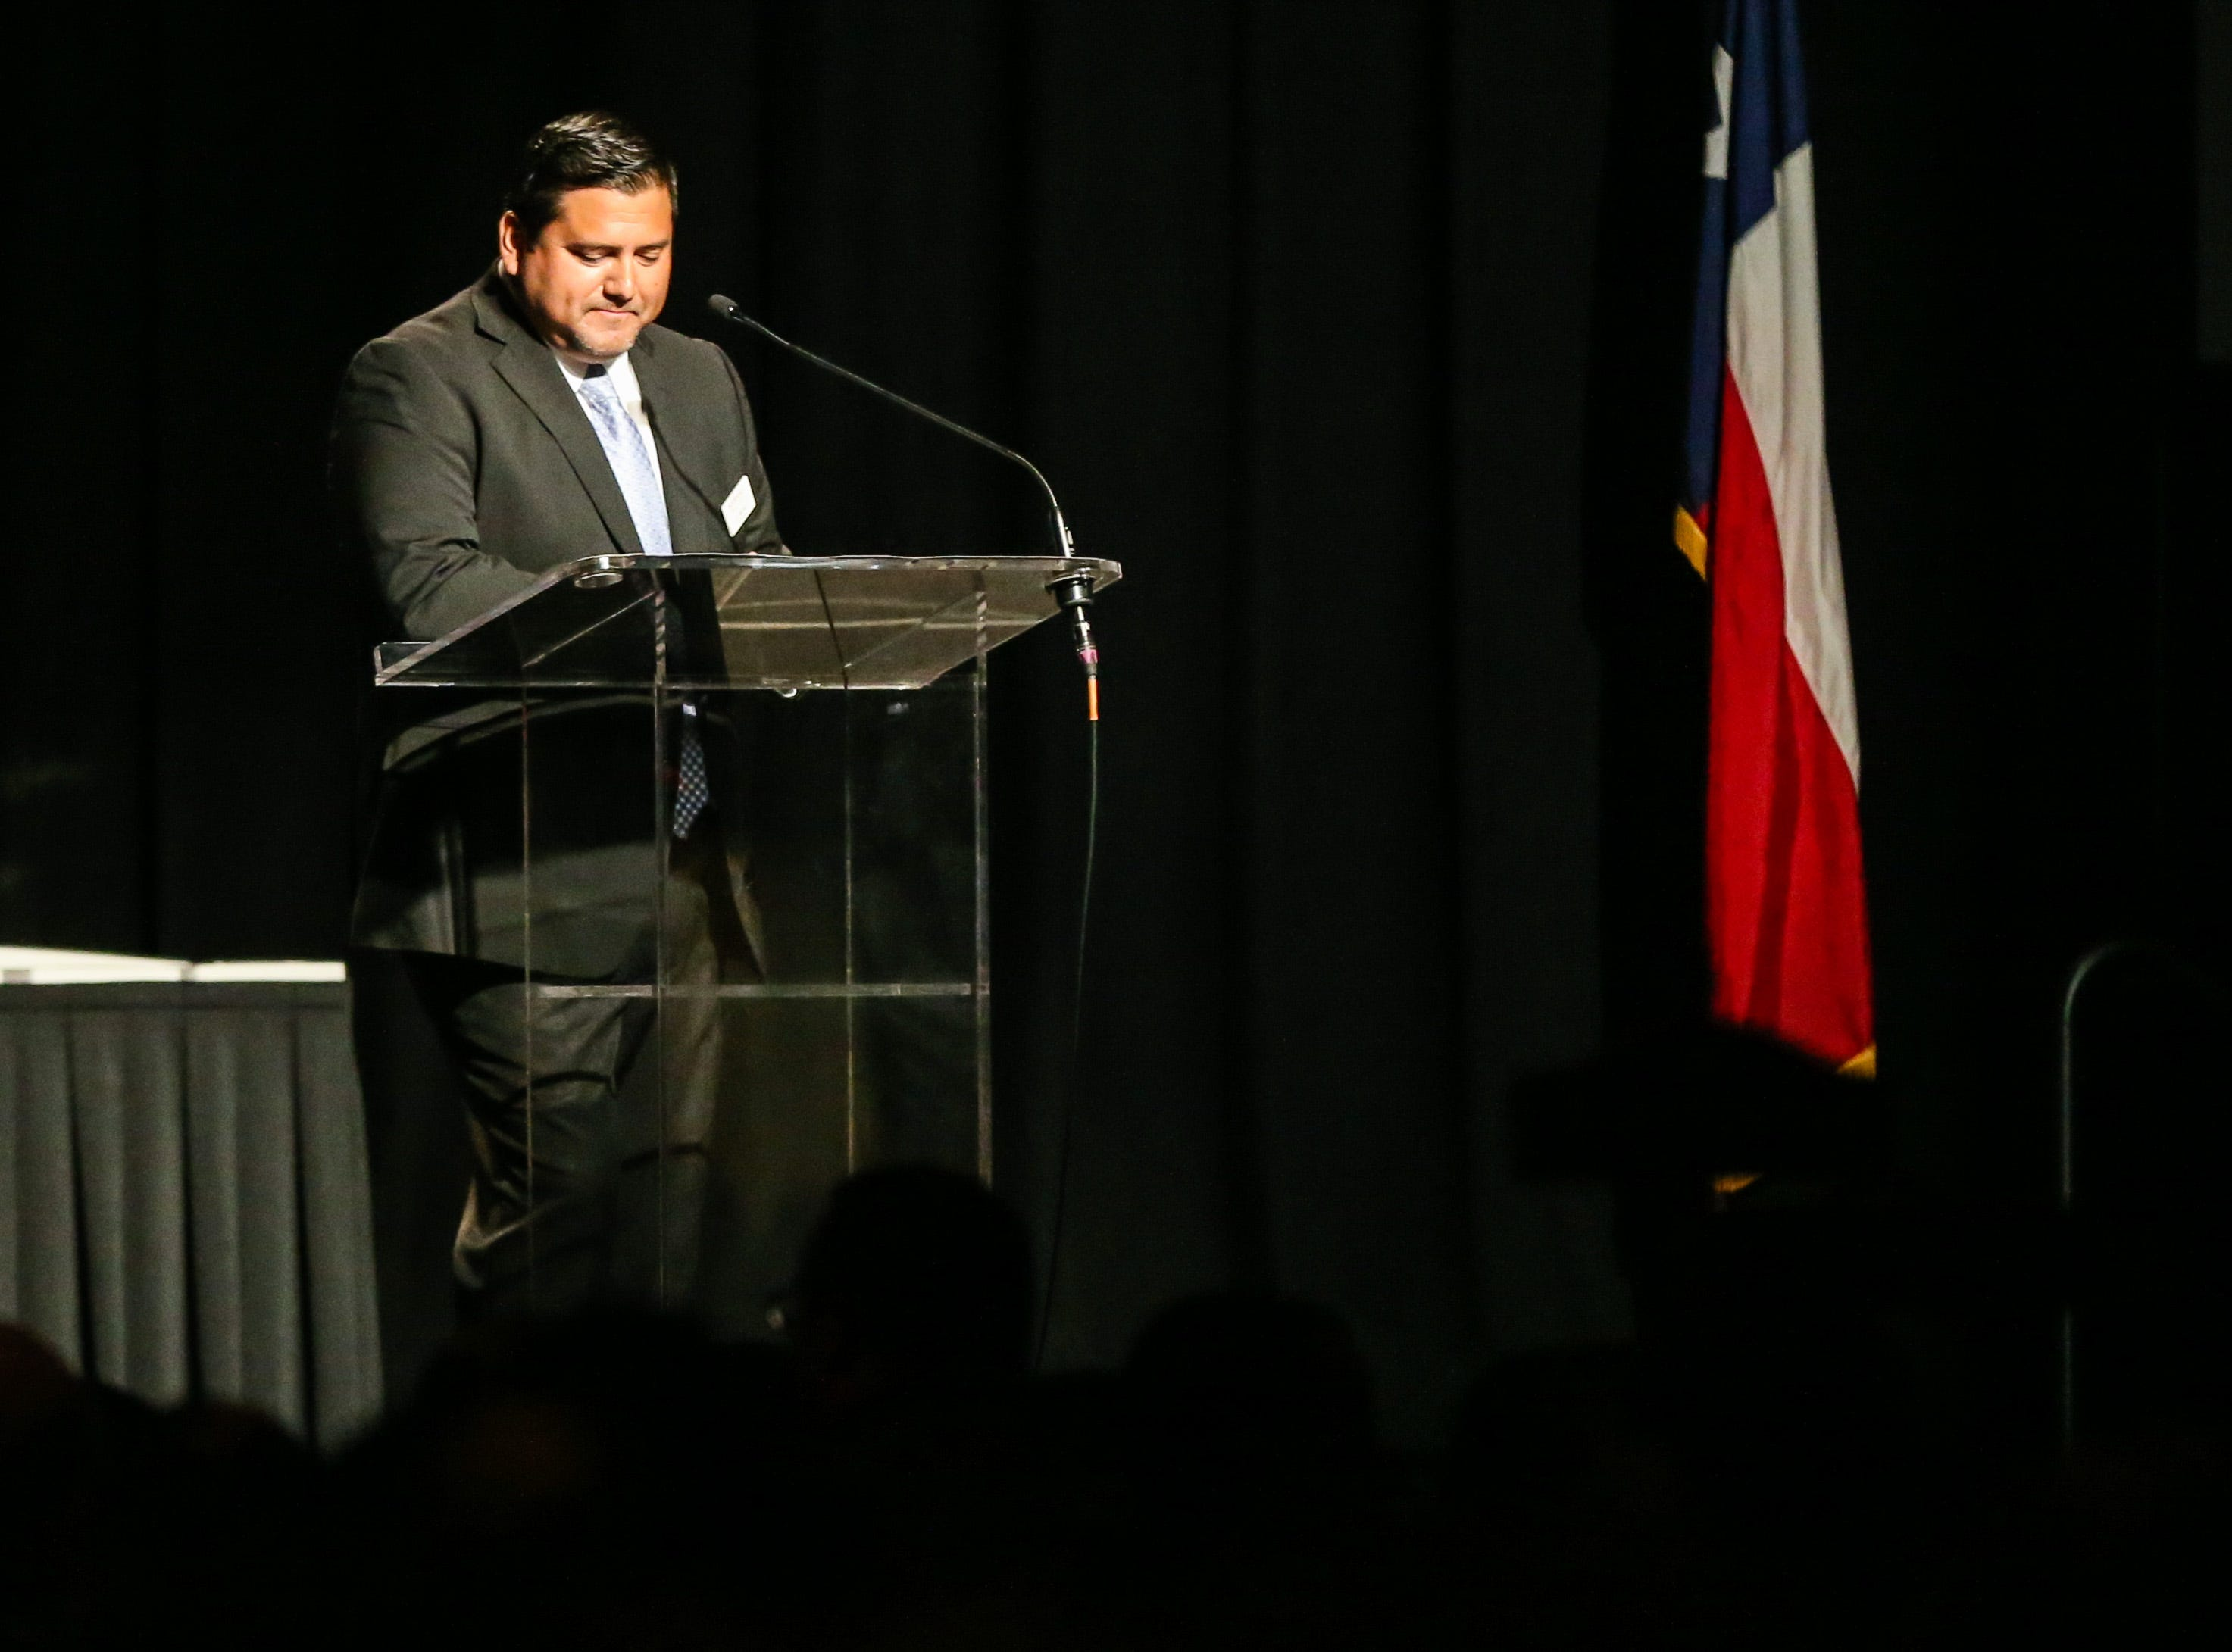 2018 Chairman CJ Muniz talks about an award recipient  during the San Angelo Chamber of Commerce Annual Banquet Thursday, Jan. 24, 2019, at McNease Convention Center.